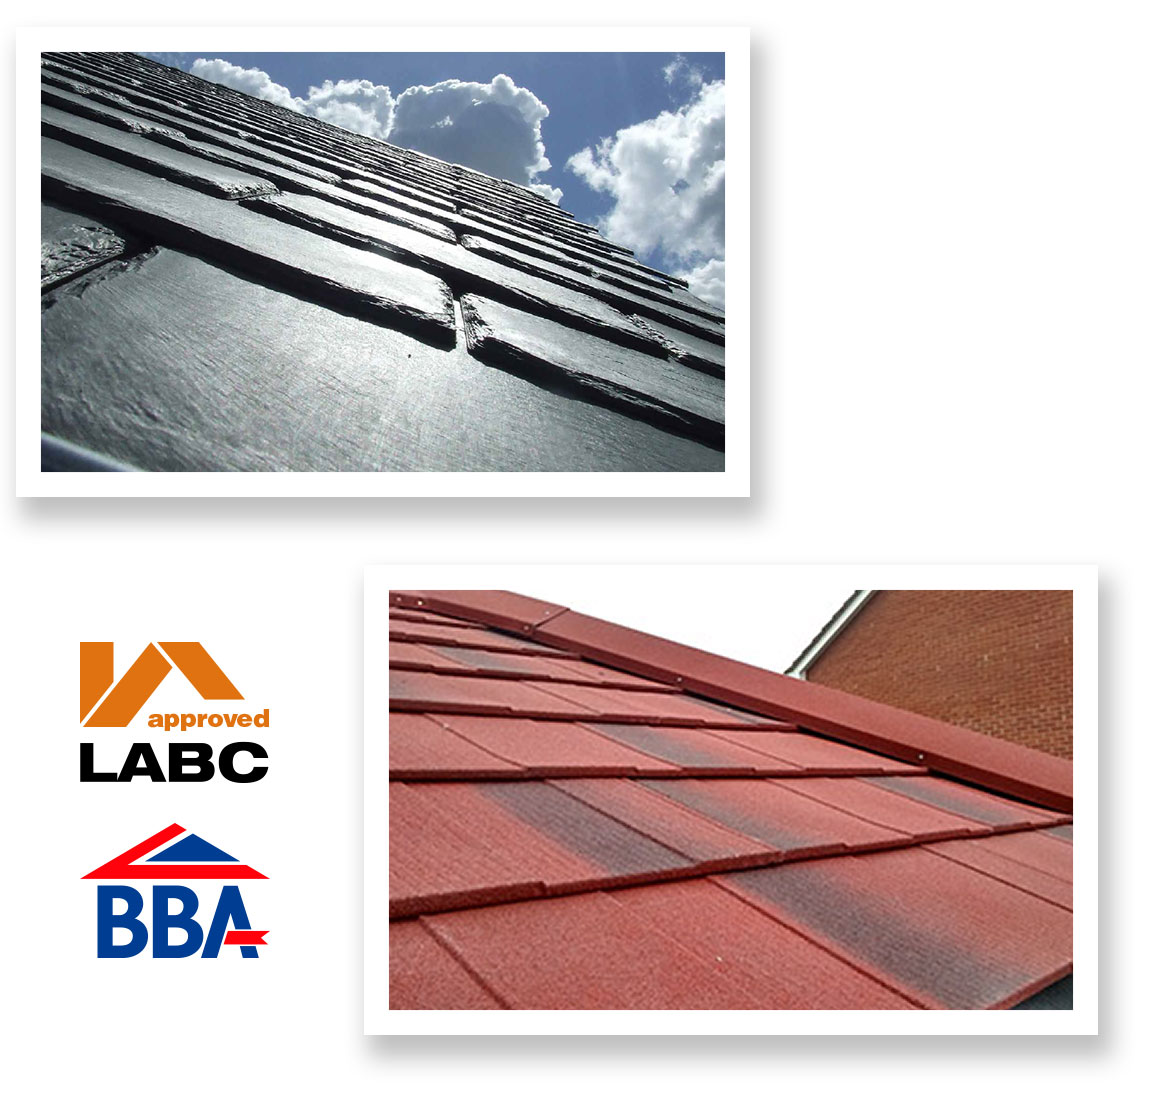 Lightweight Conservatory Roof Tiles